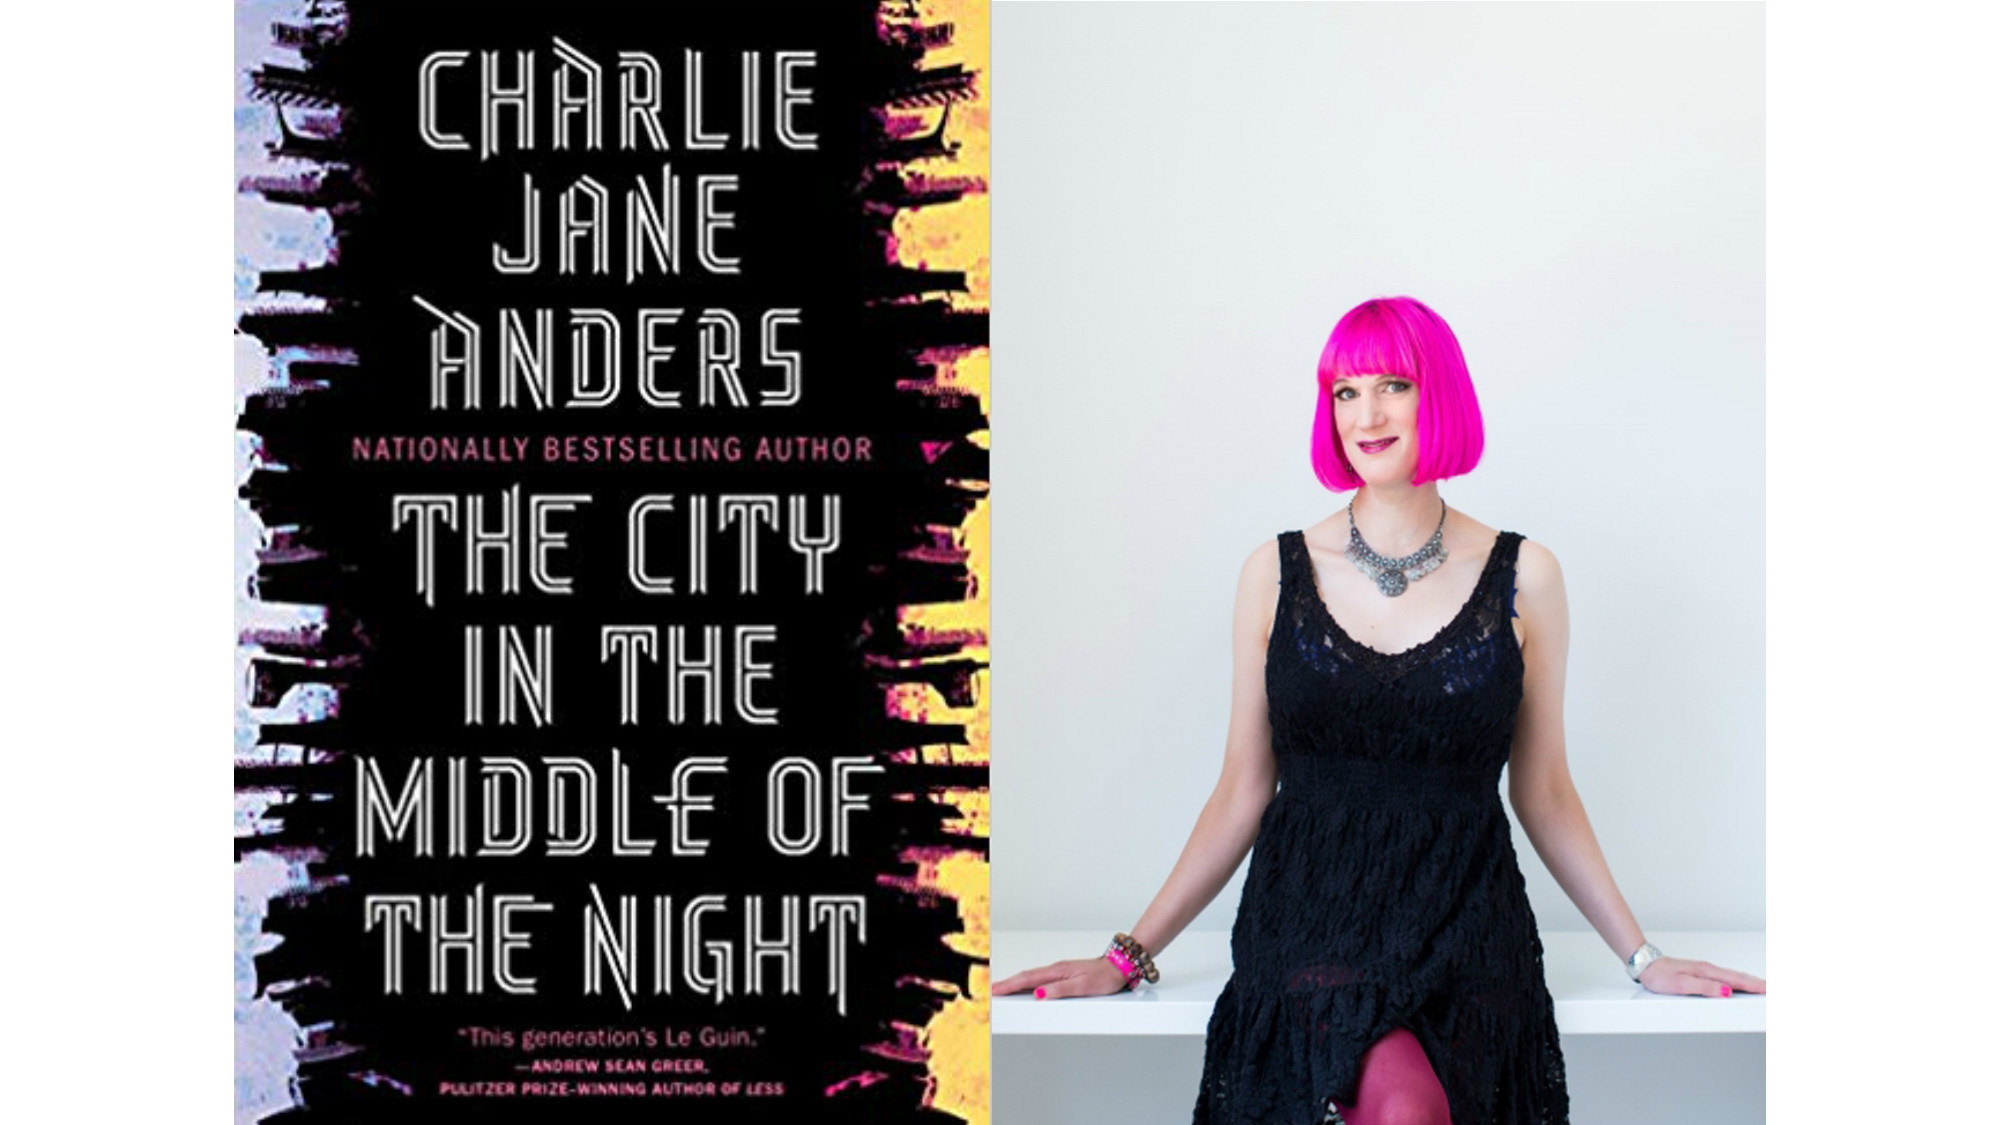 Science fiction: Charlie Jane Anders returns with a rousing and sophisticated adventure in 'The City in the Middle of the Night'